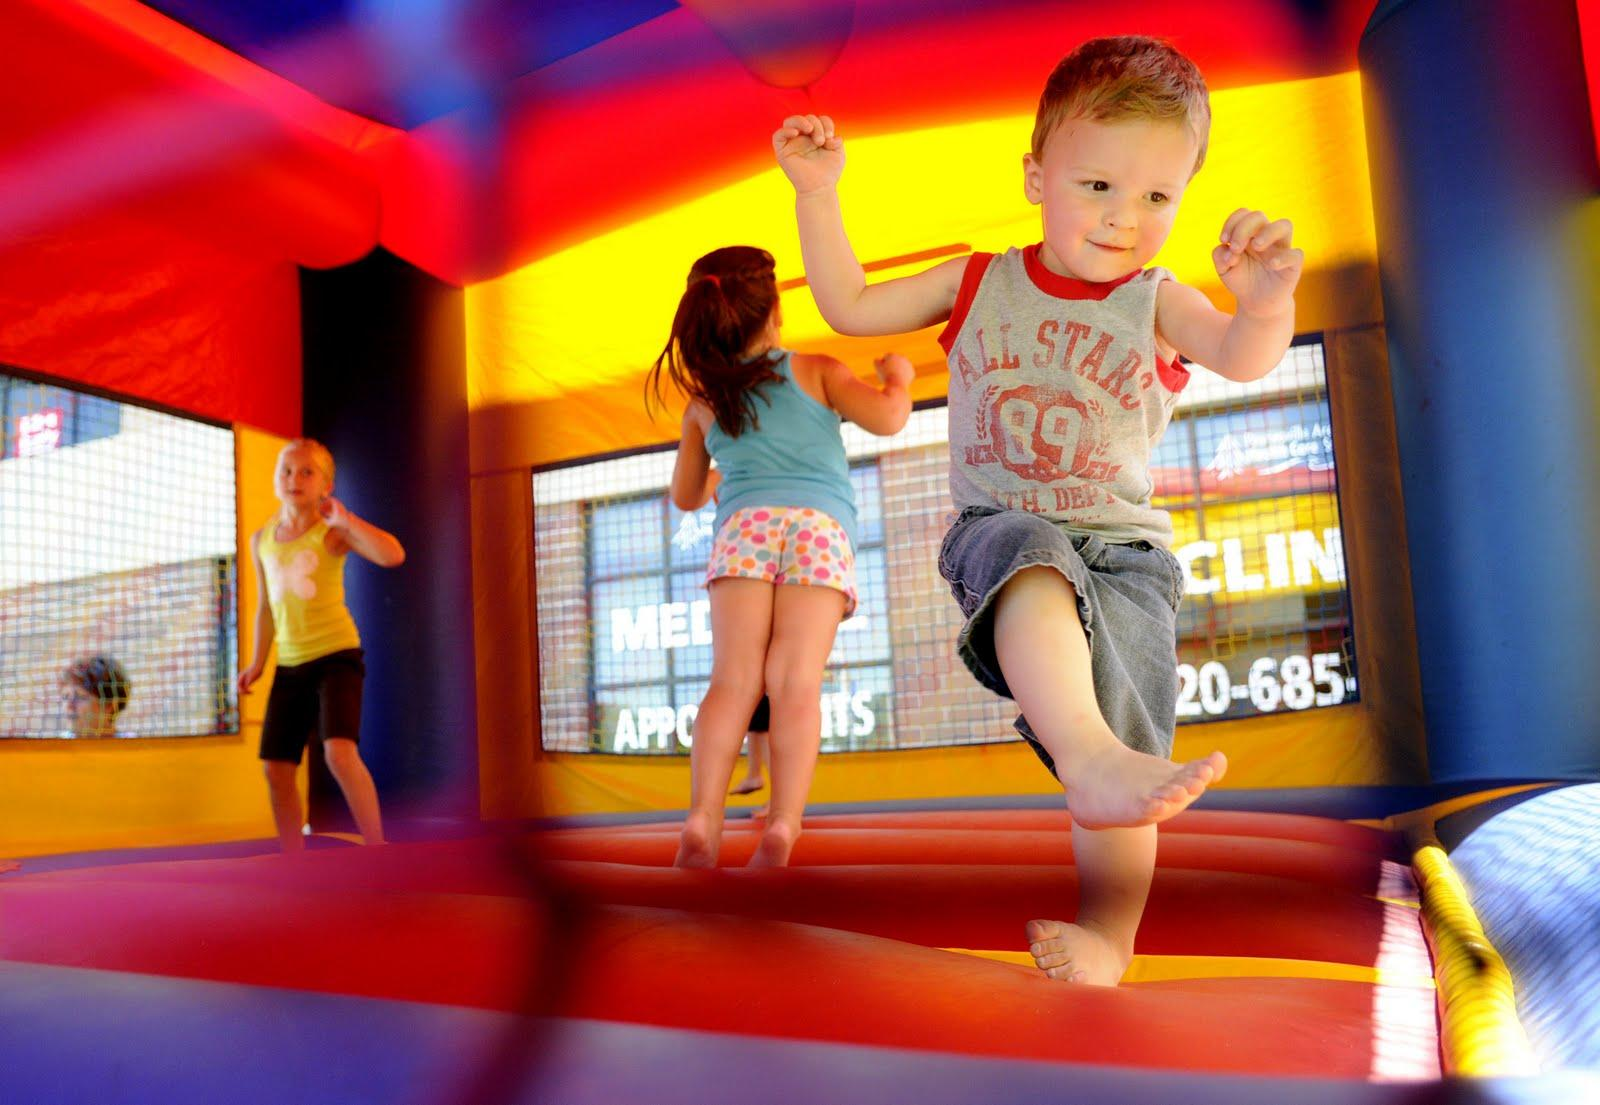 The Bouncy Kingdom 95 Bounce Houses For Rent In